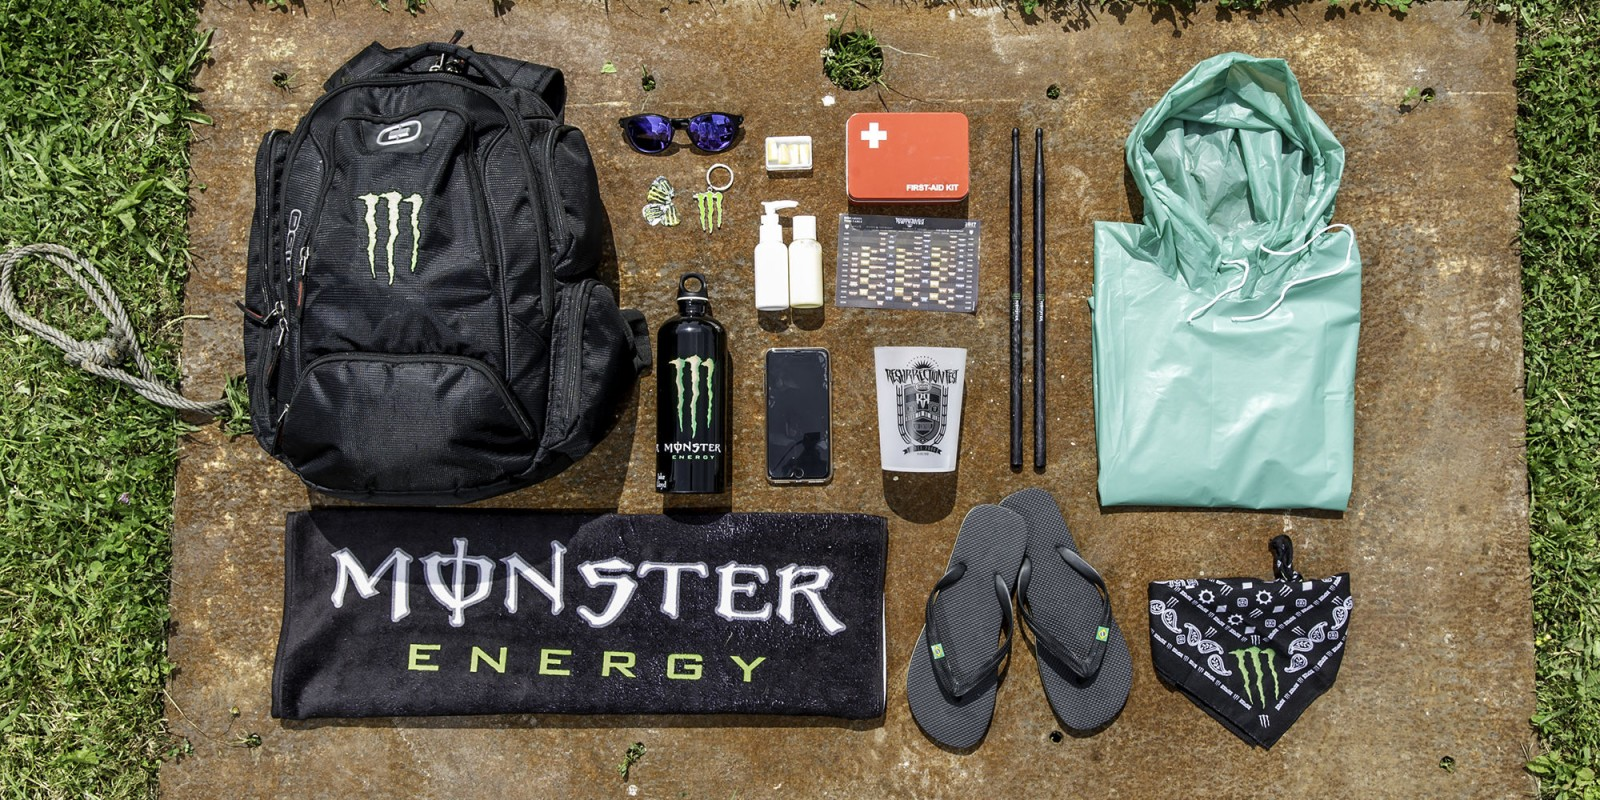 Survival kit for Resurrection Fest